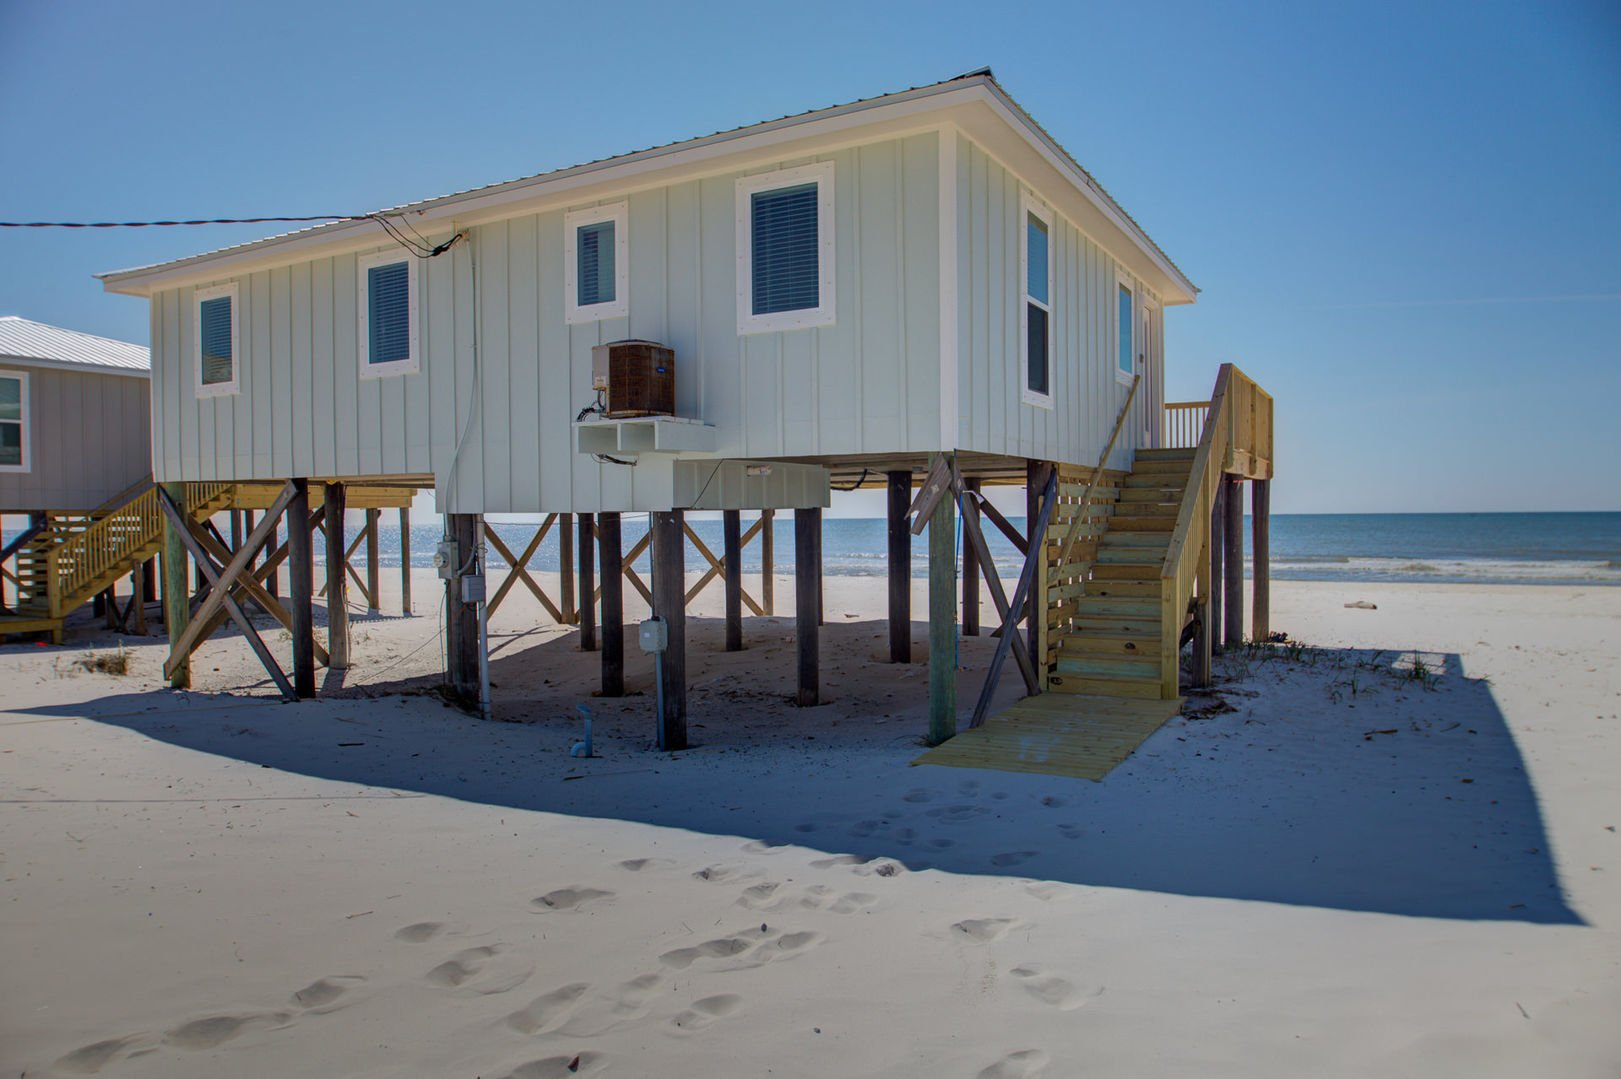 The exterior of this Beach House Rental in Gulf Shores.